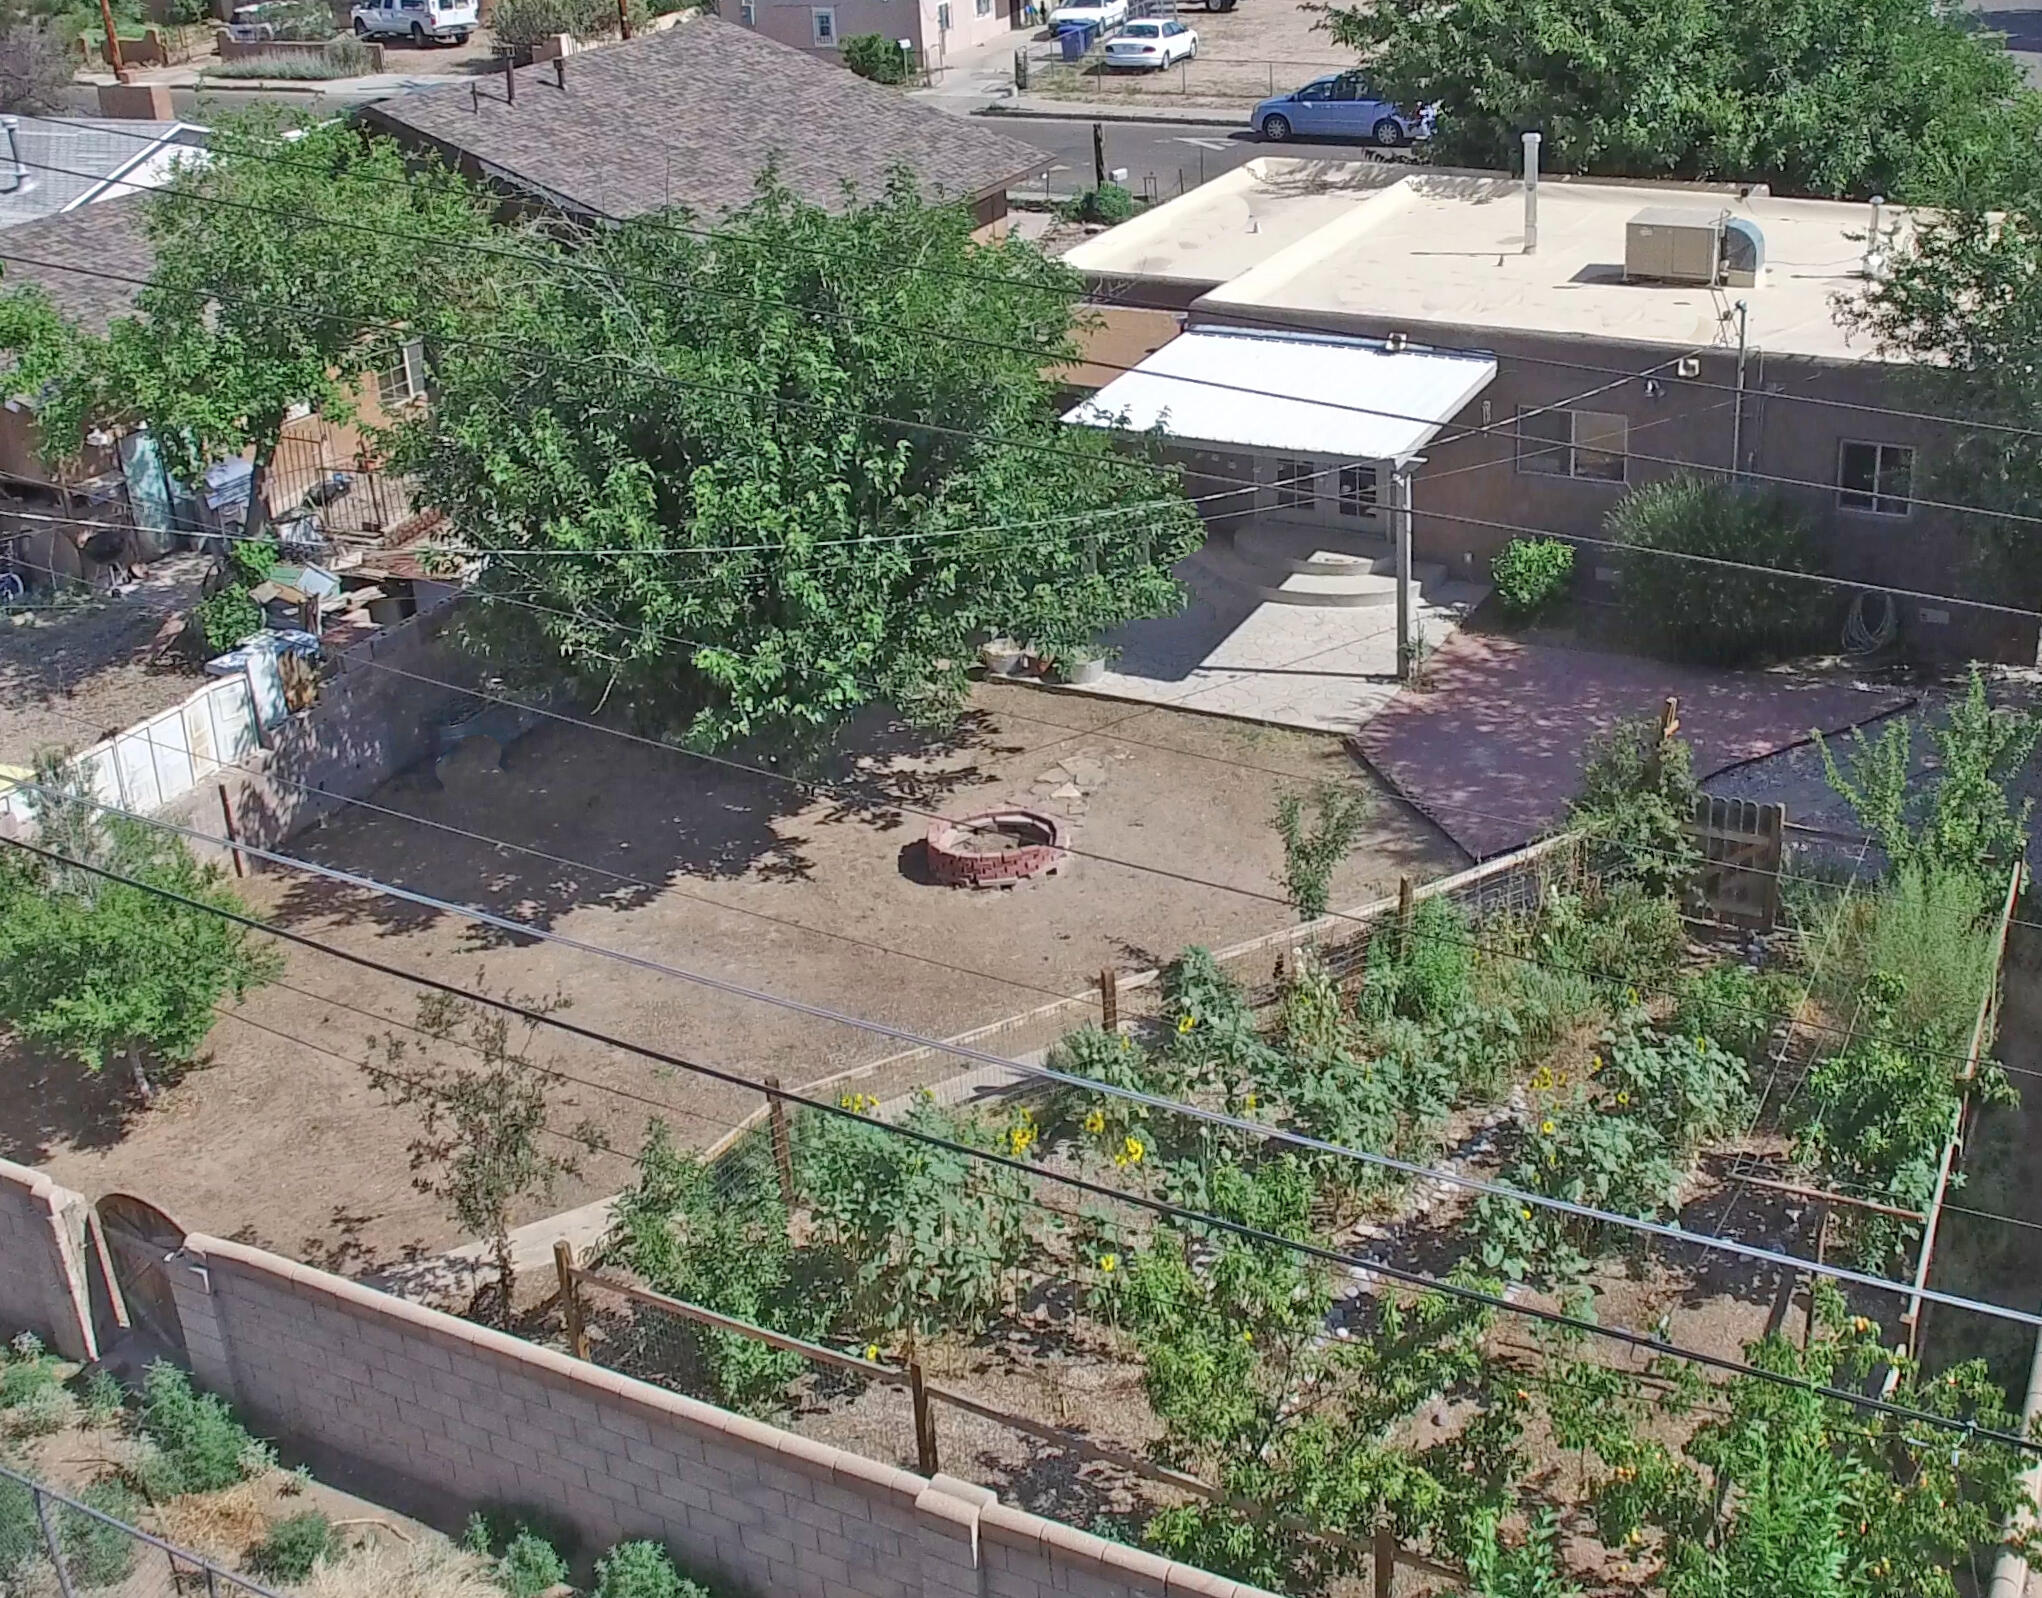 This wonderfully light and bright charming 3 bedroom, 2 bath home in a well-established area of the near north valley is an ideal ''starter'' or ''start over'' home. Remodeled 3 years ago with almost everything updated and/or replaced. Hardwood floors in living and bedroom, easy care tile in kitchen and baths.  Generous kitchen has Whirlpool stainless steel appliances, a deep stainless steel sink topped off with a reverse osmosis water filtration system for great tasting clean water on demand!  Large windows provide ample natural light throughout.  Closet space for this age of home is generous. French doors lead from master bedroom onto covered patio and then into spacious back yard full of several fruiting trees and gorgeous sunflowers. Garden on drip system for ease-a gardener's delight!